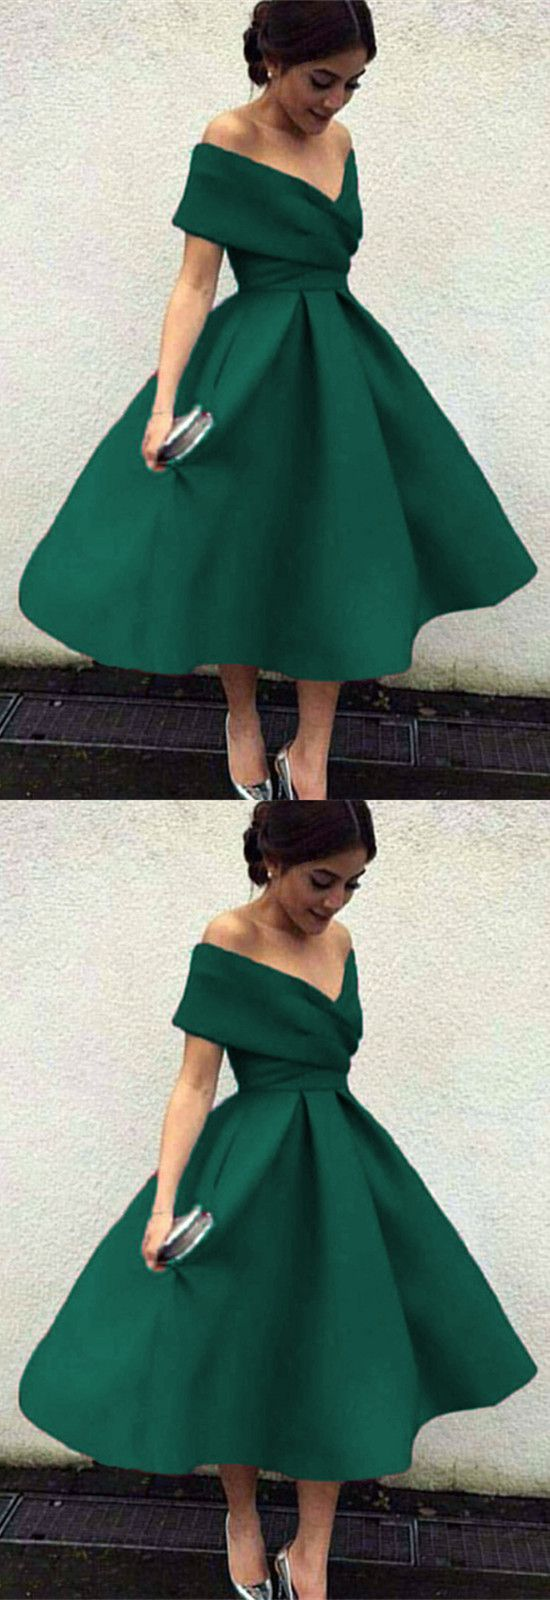 Short offtheshoulder prom dress with pockets midi dresses in